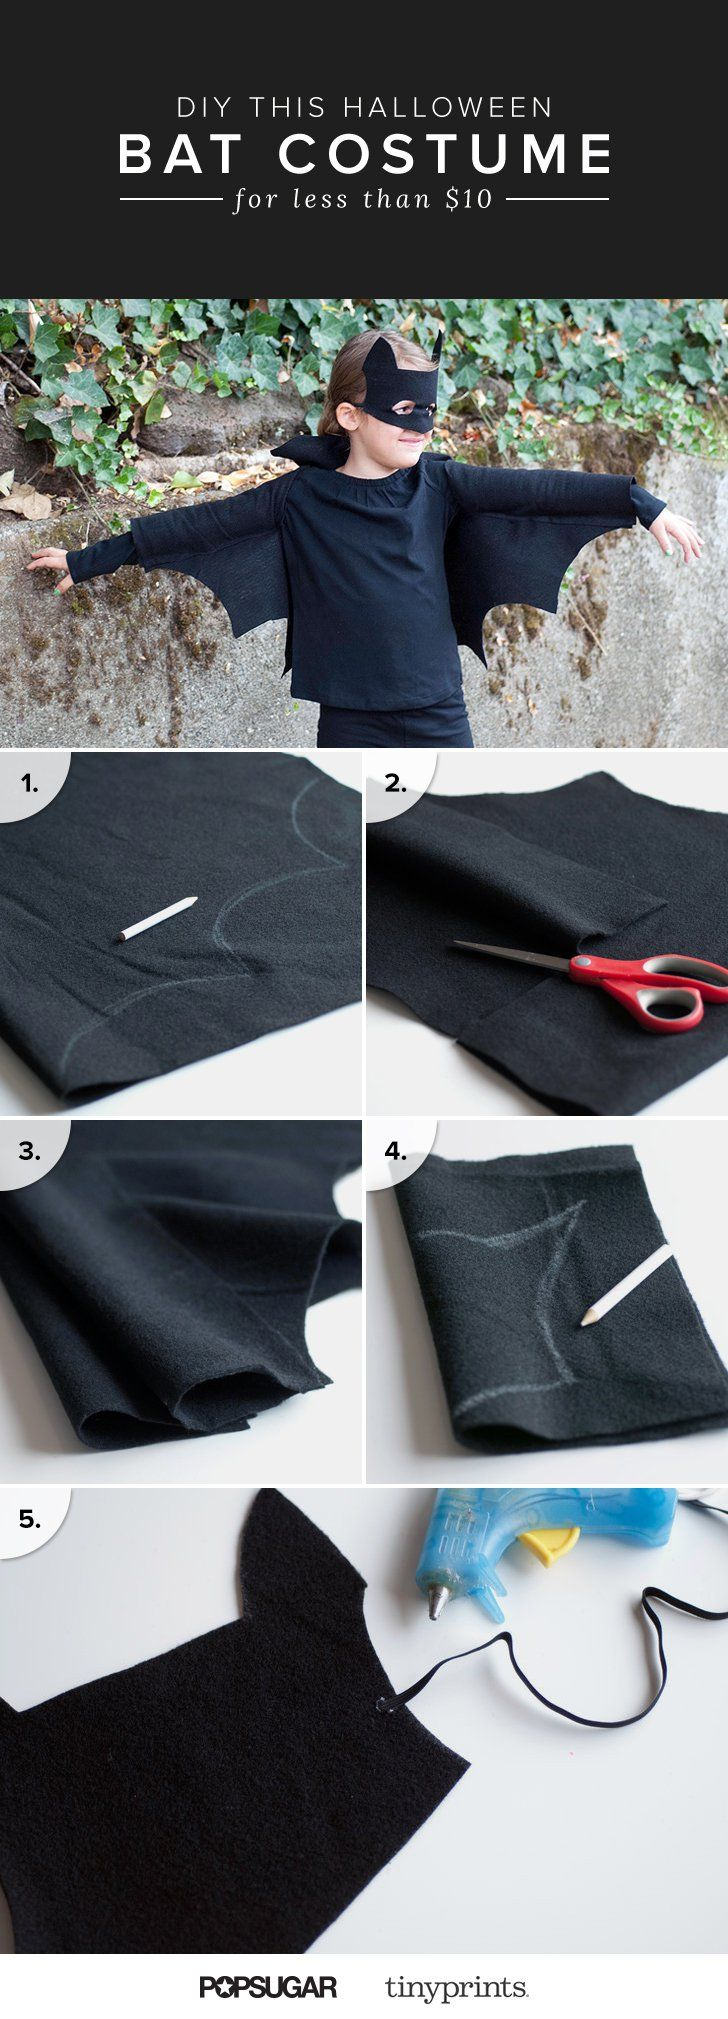 Pin for Later: DIY This Halloween Bat Costume For Less Than $10